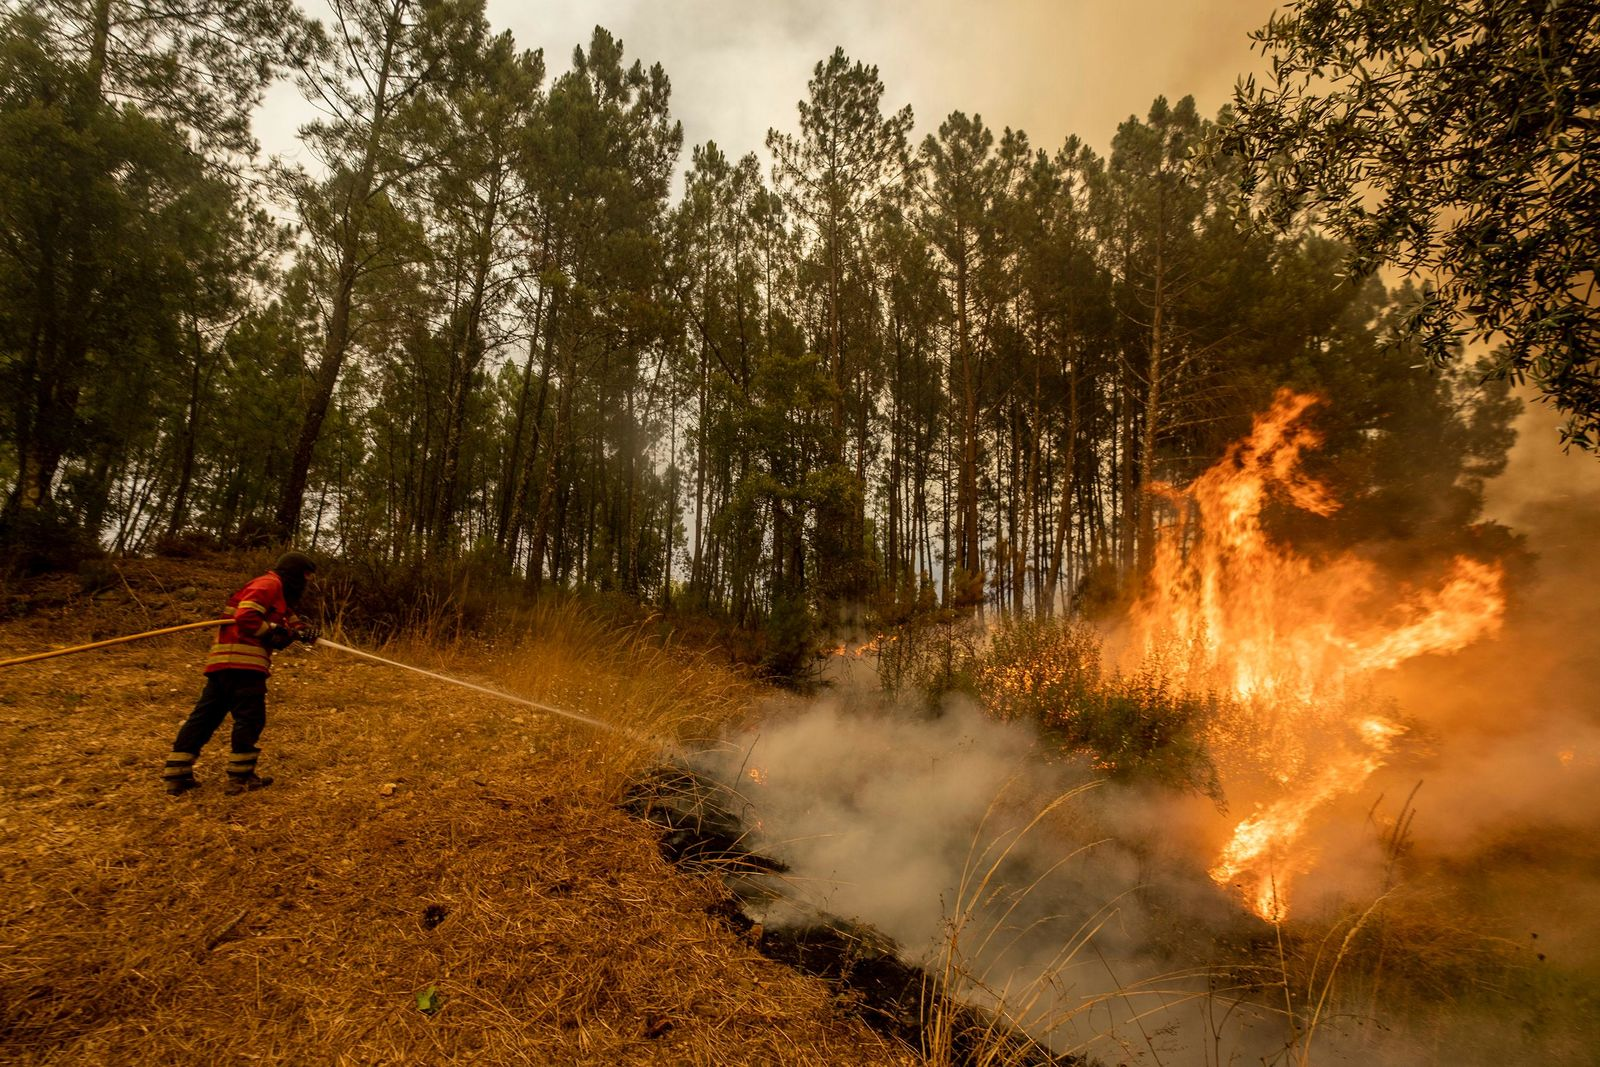 Firefighters try to extinguish a wildfire at the village of Chaveira, near Macao, in central Portugal on Monday, July 22, 2019.{ } (AP Photo/Sergio Azenha)